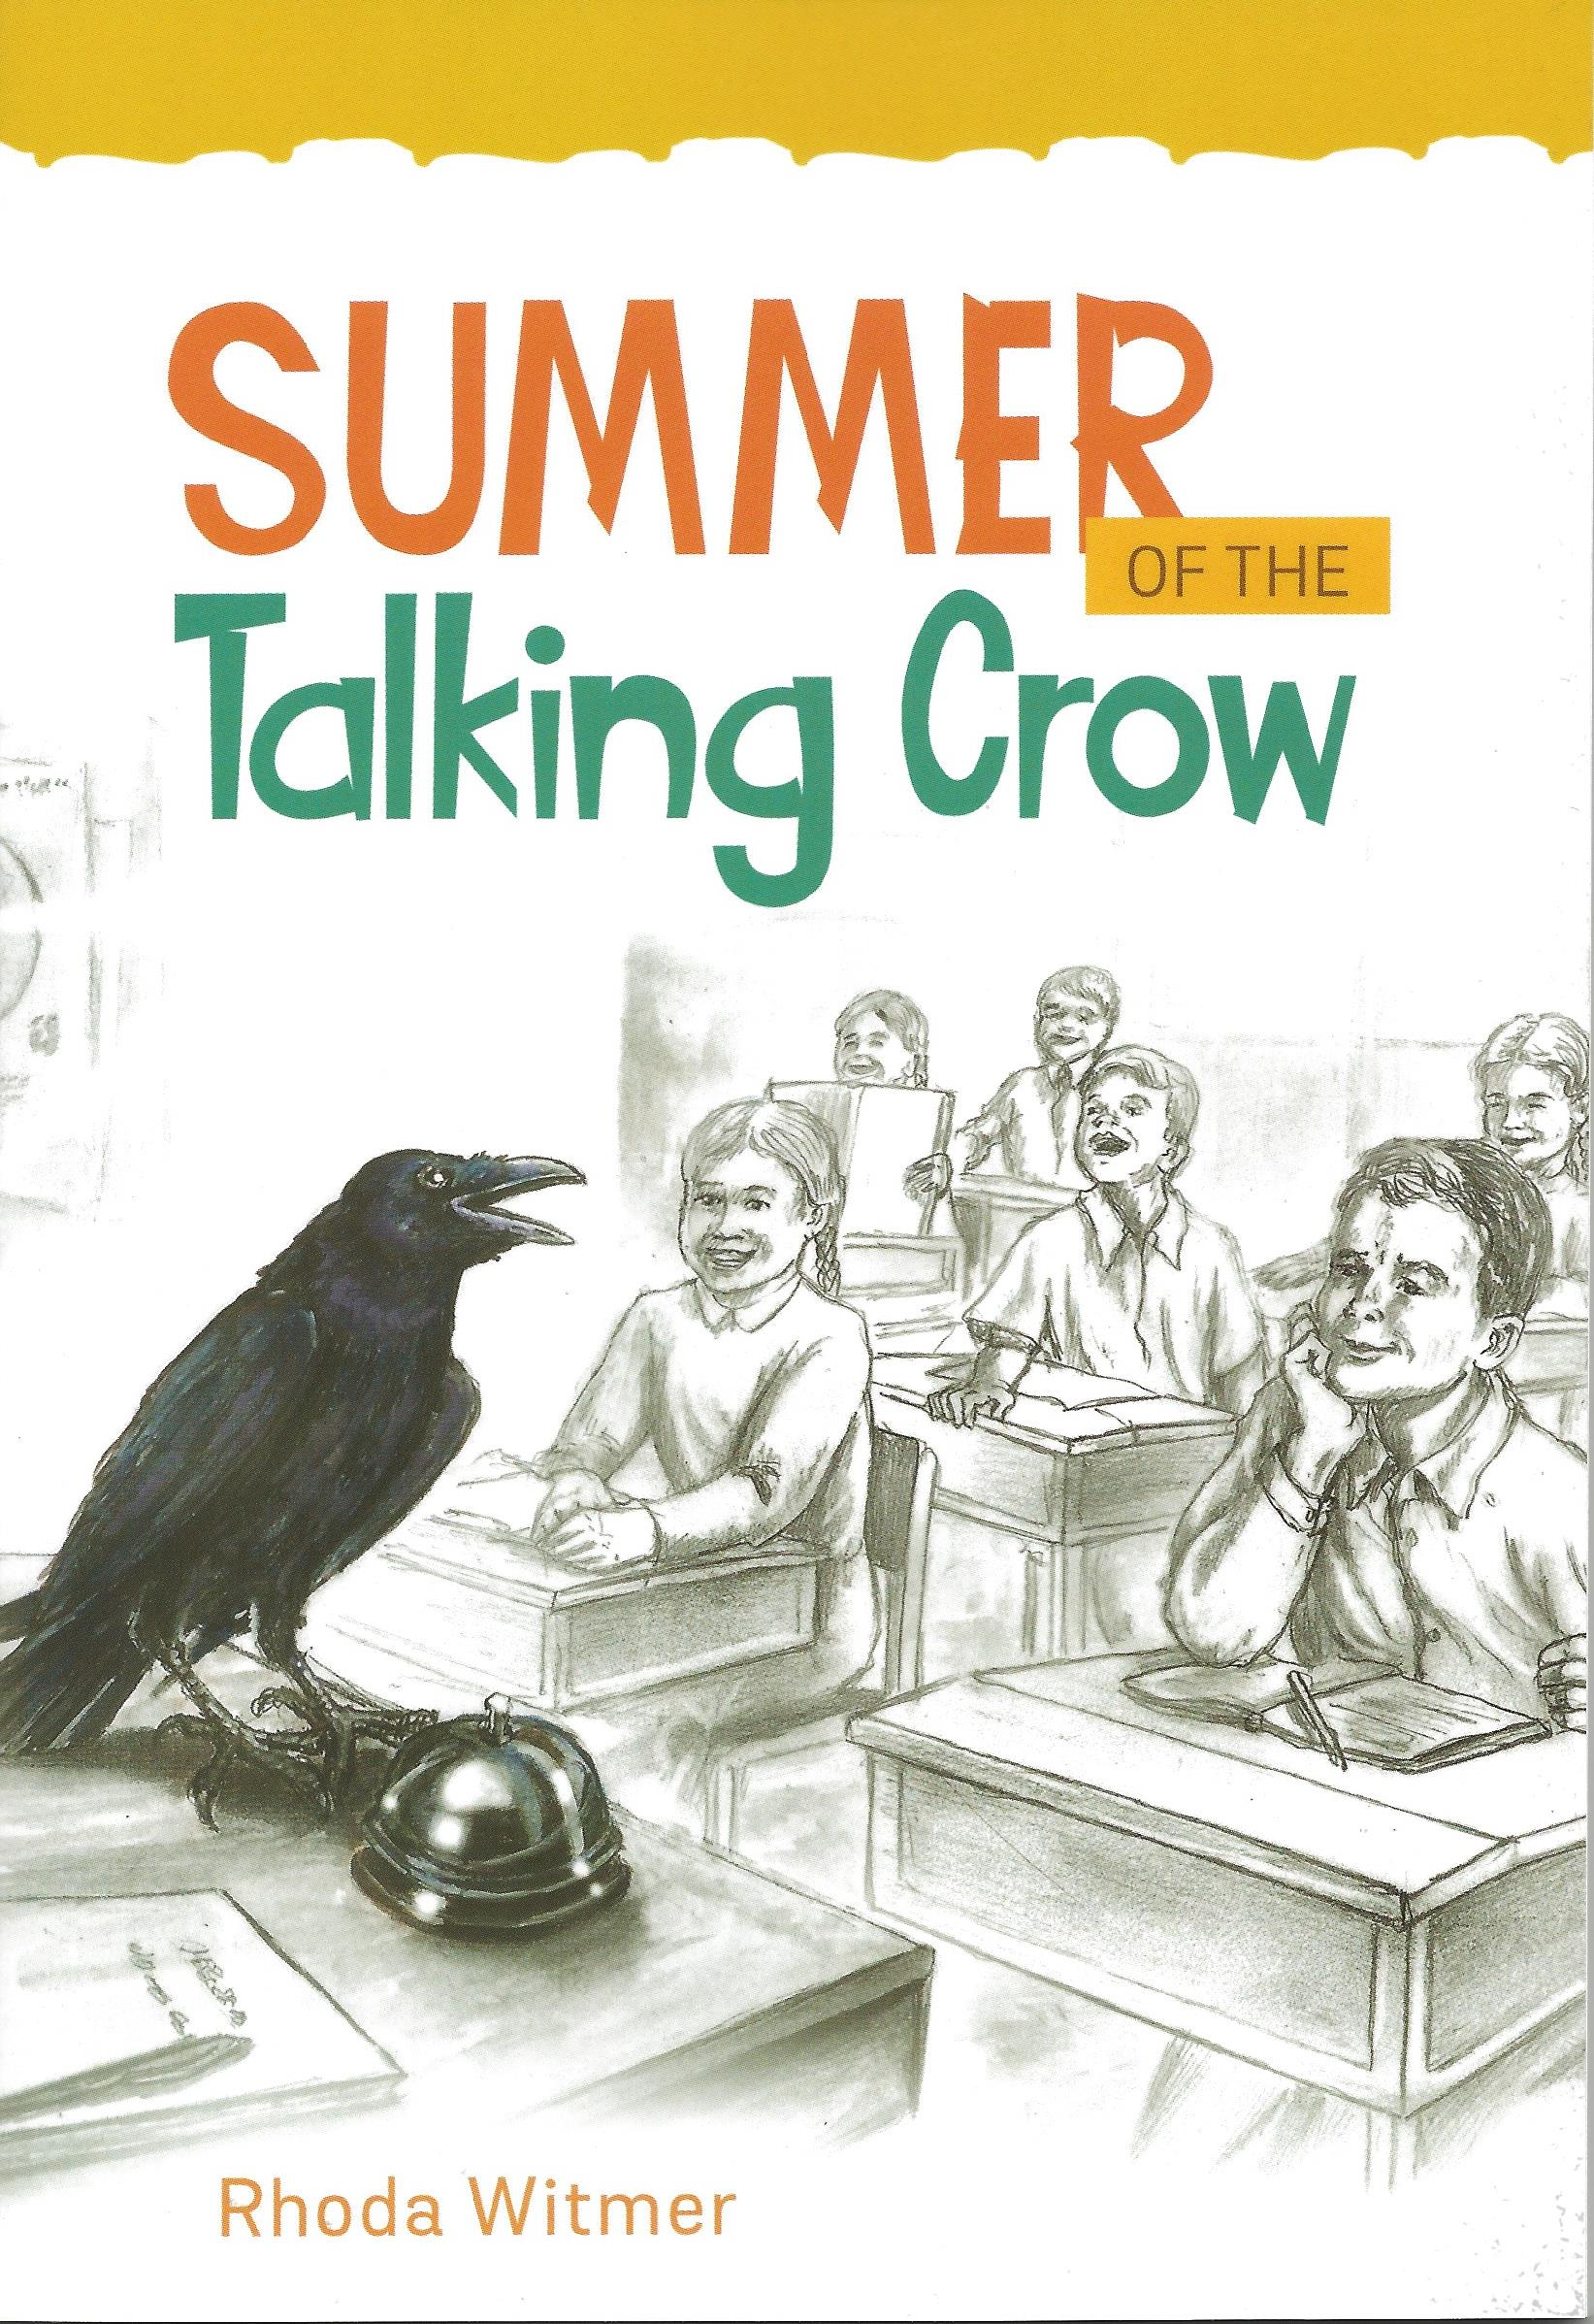 SUMMER OF THE TALKING CROW Rhoda Witmer